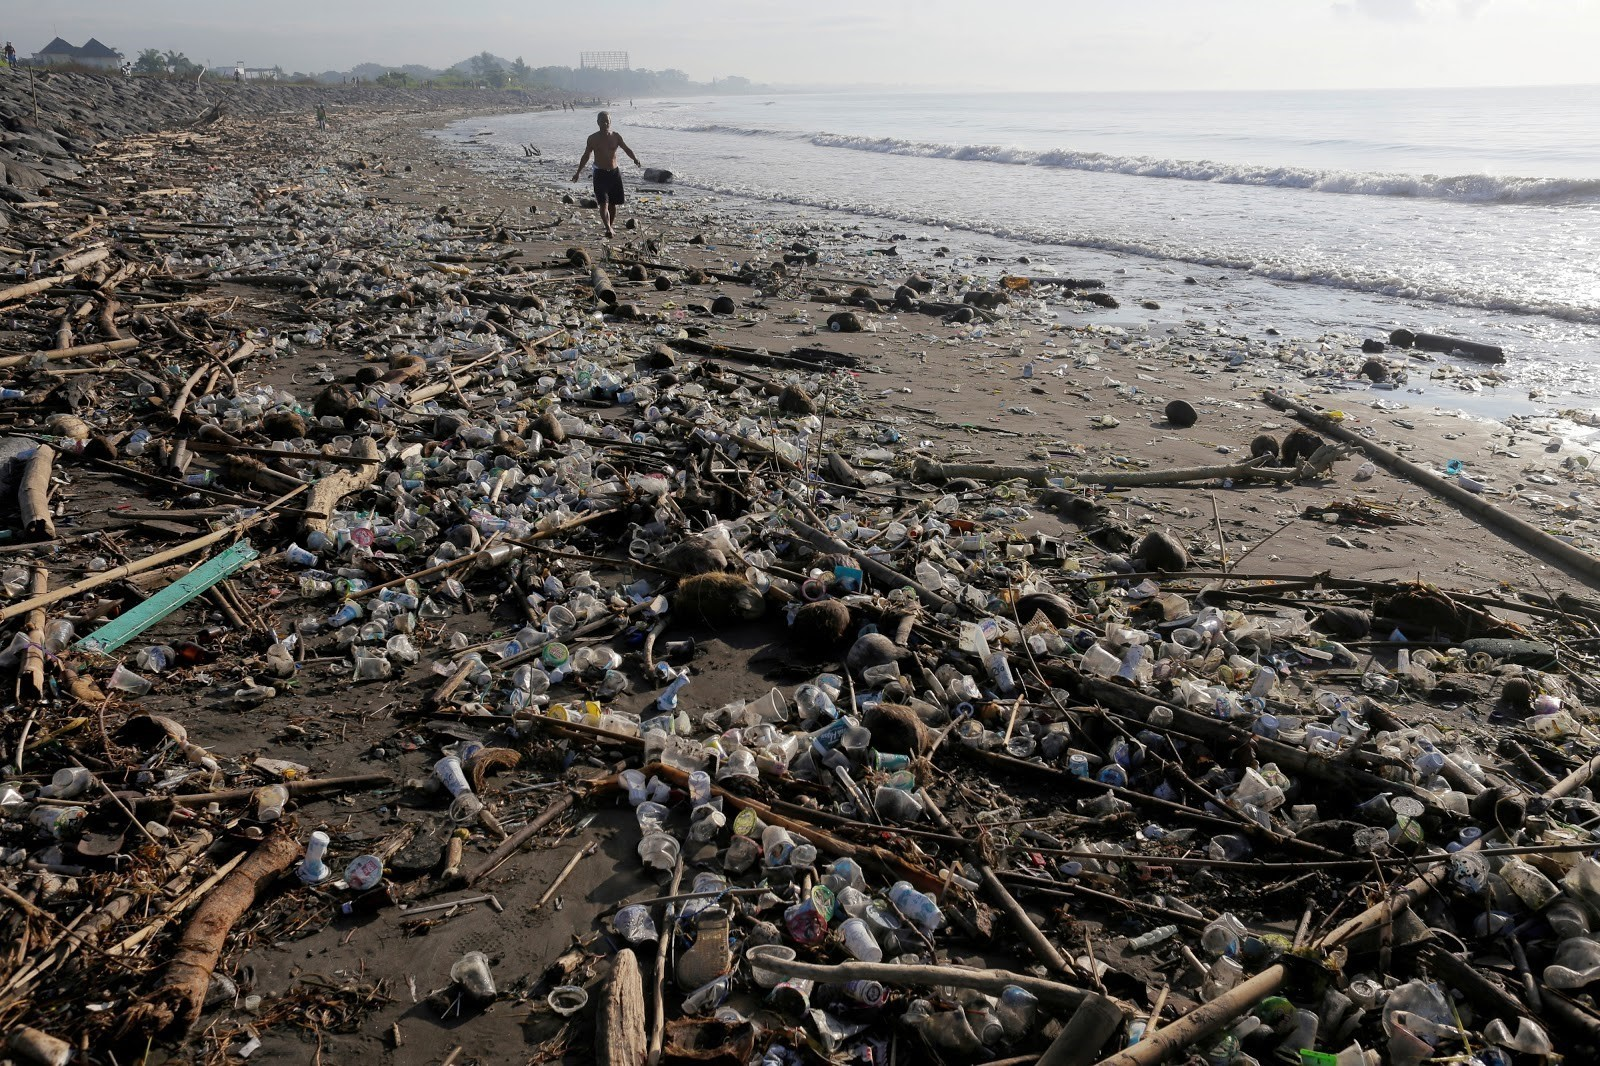 About 13 million tonnes of plastic ends up in the ocean every year, according to the UN.